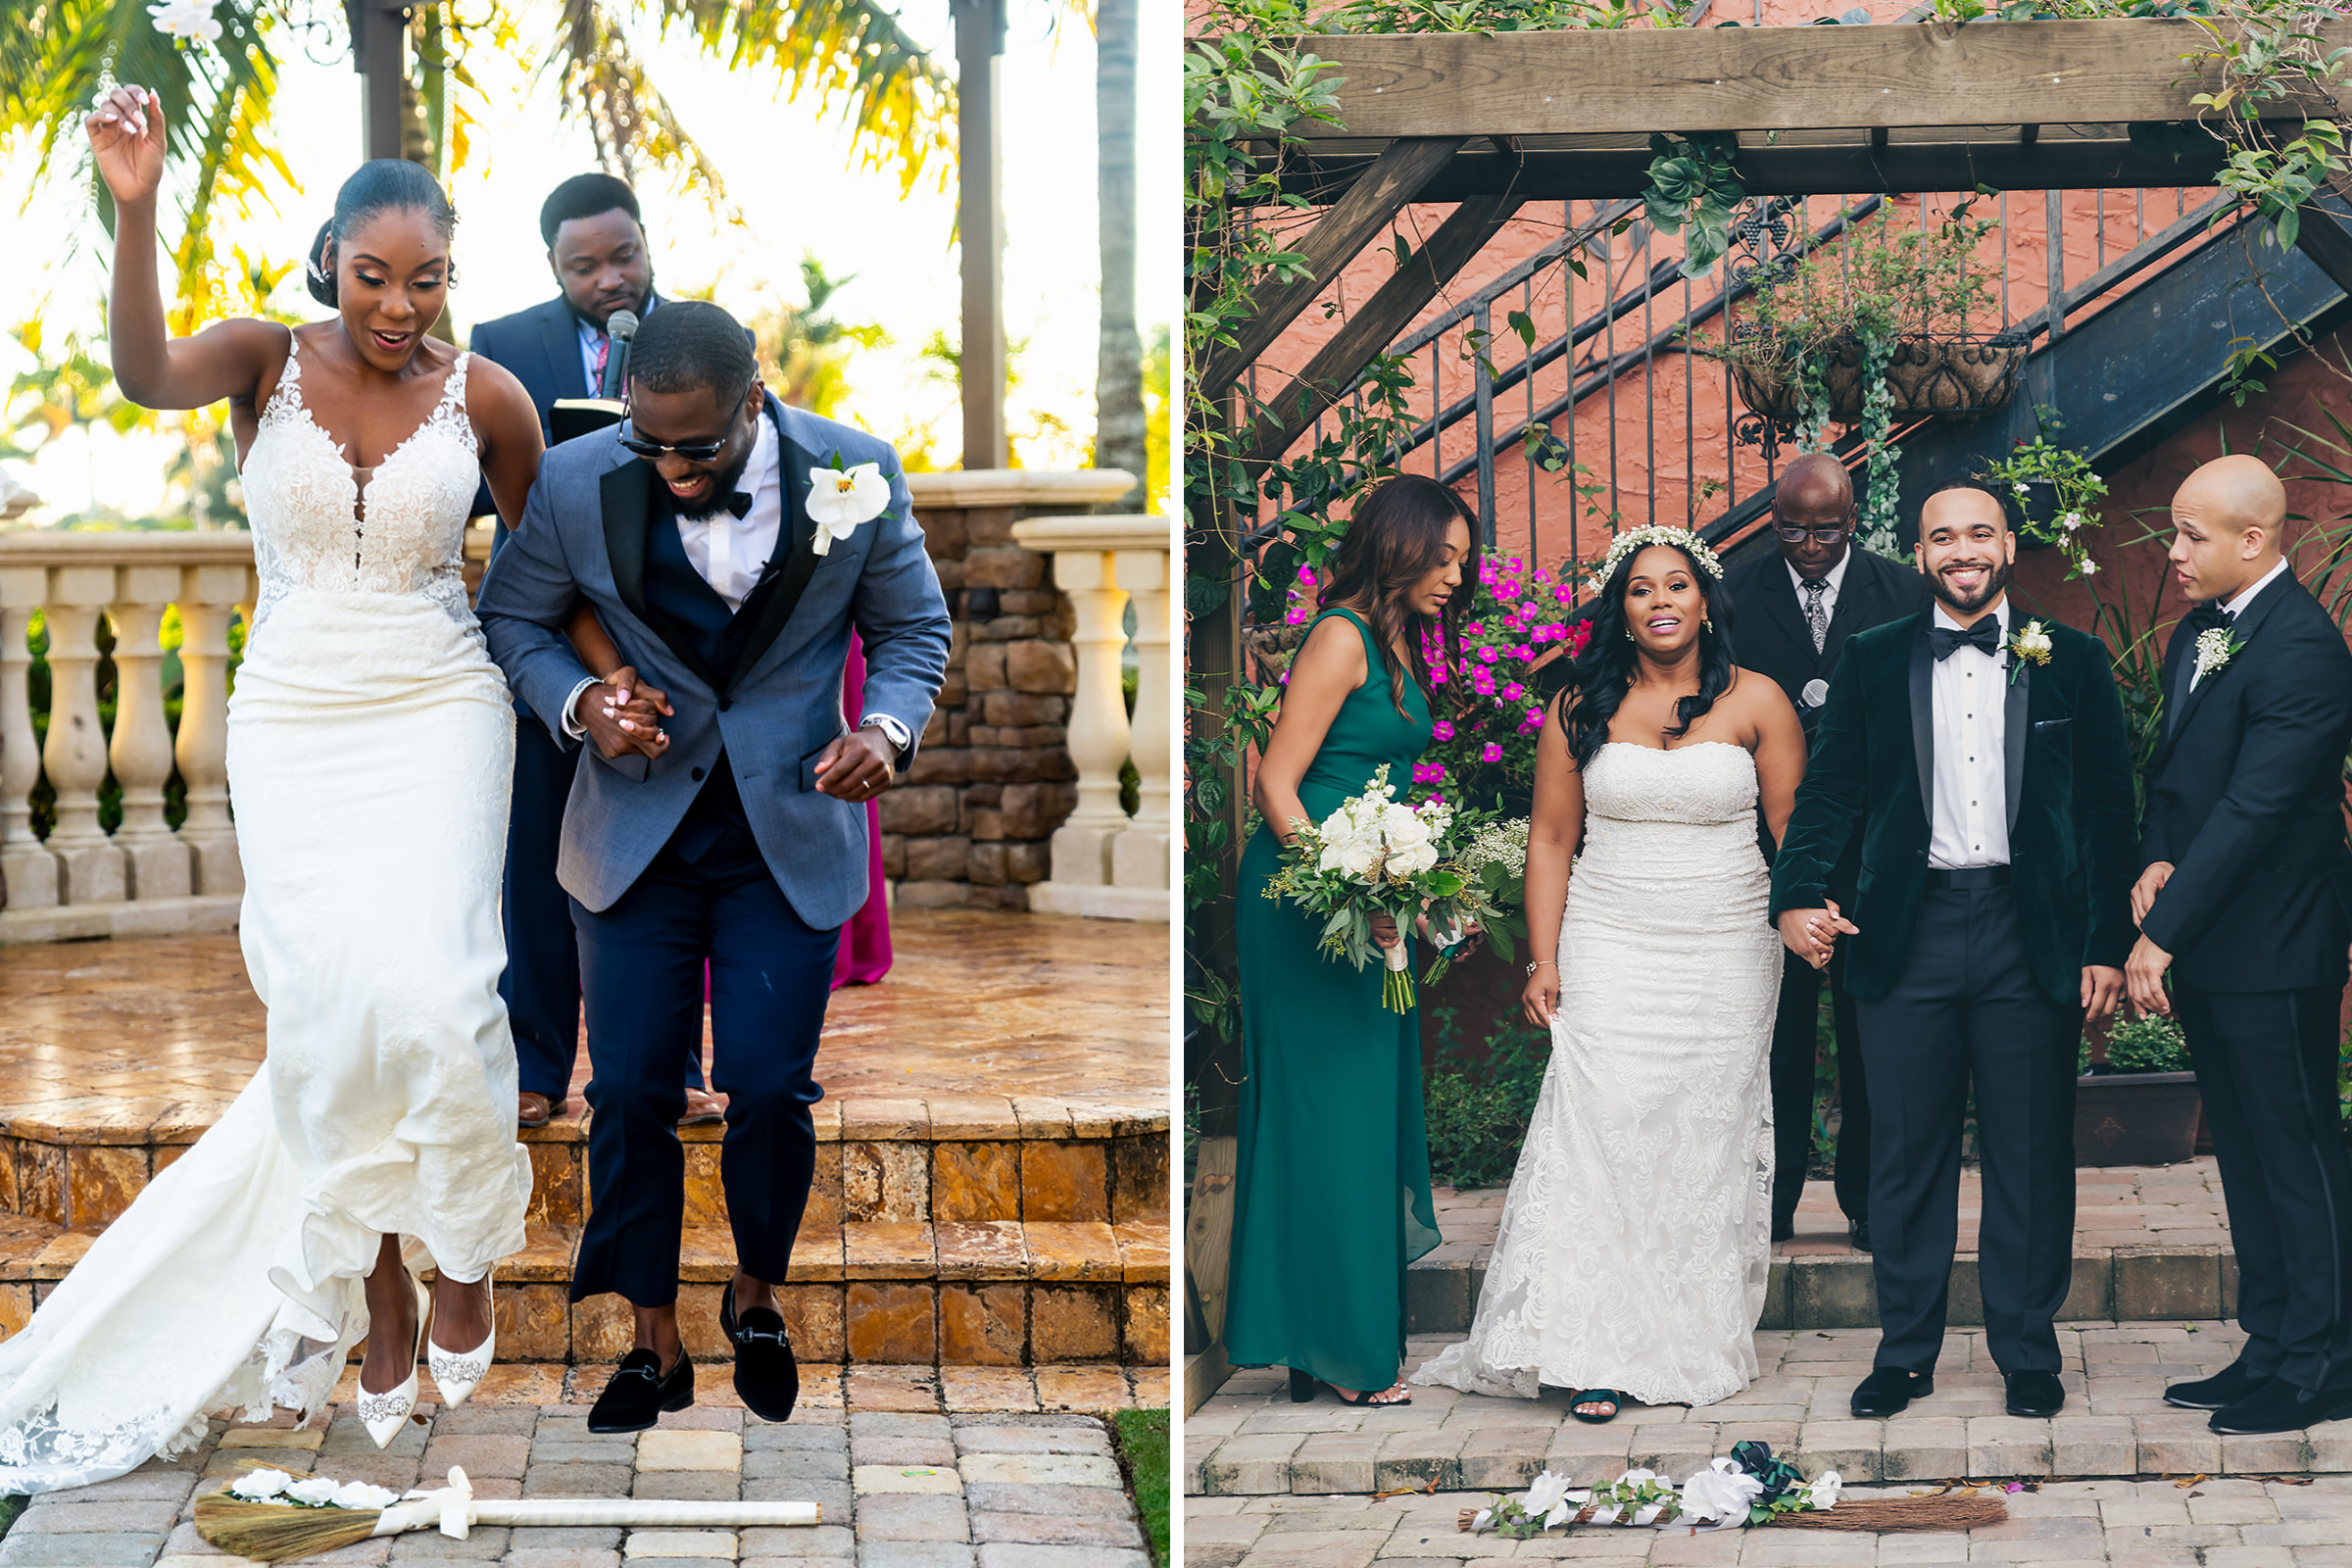 Jumping the Broom Wedding Traditions